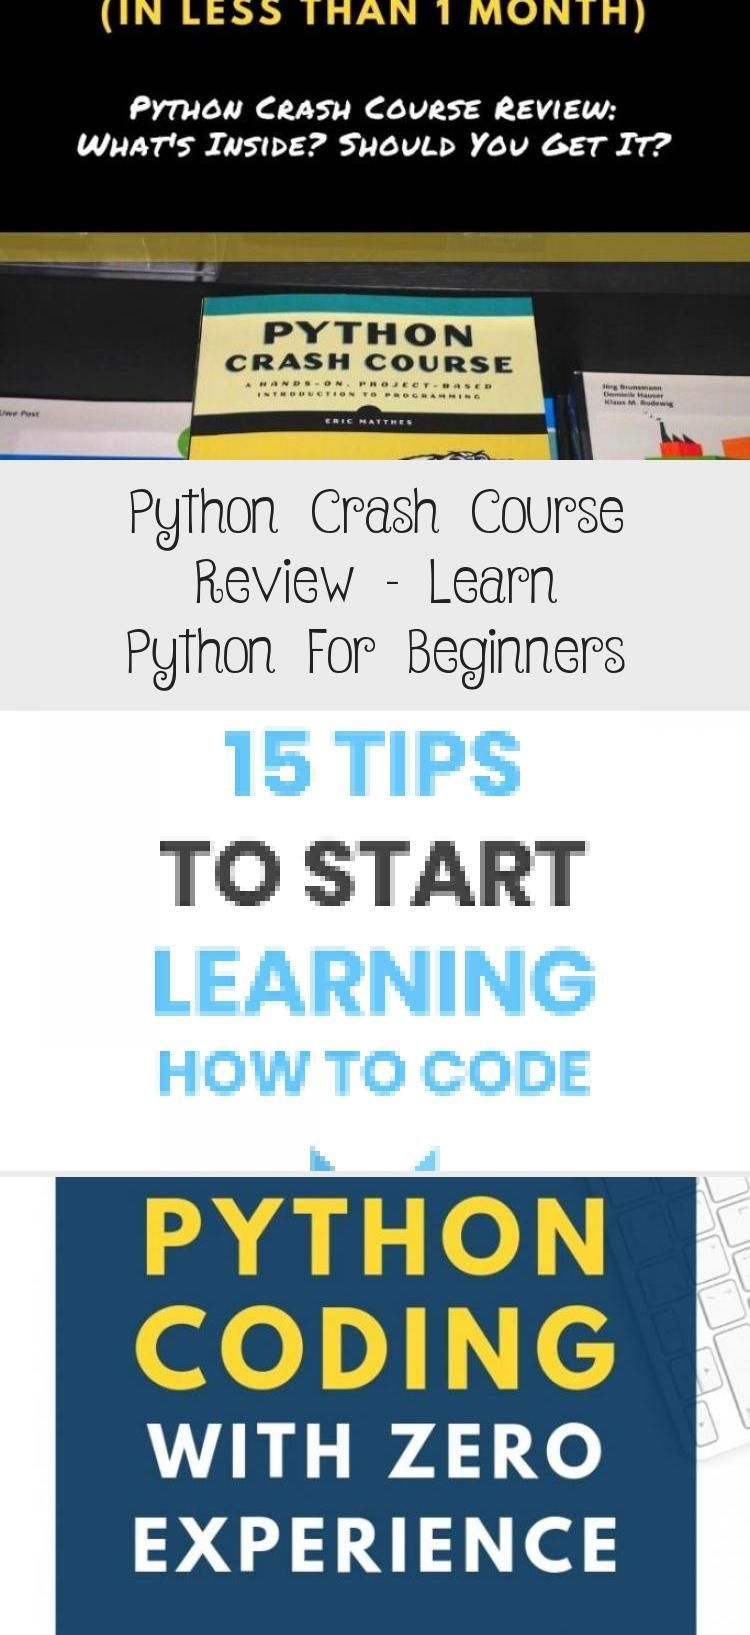 Python Crash Course Review Learn Python For Beginners Technology Https Ift Tt 2x6l1ya In 2020 Crash Course Learn Web Development Learning Web